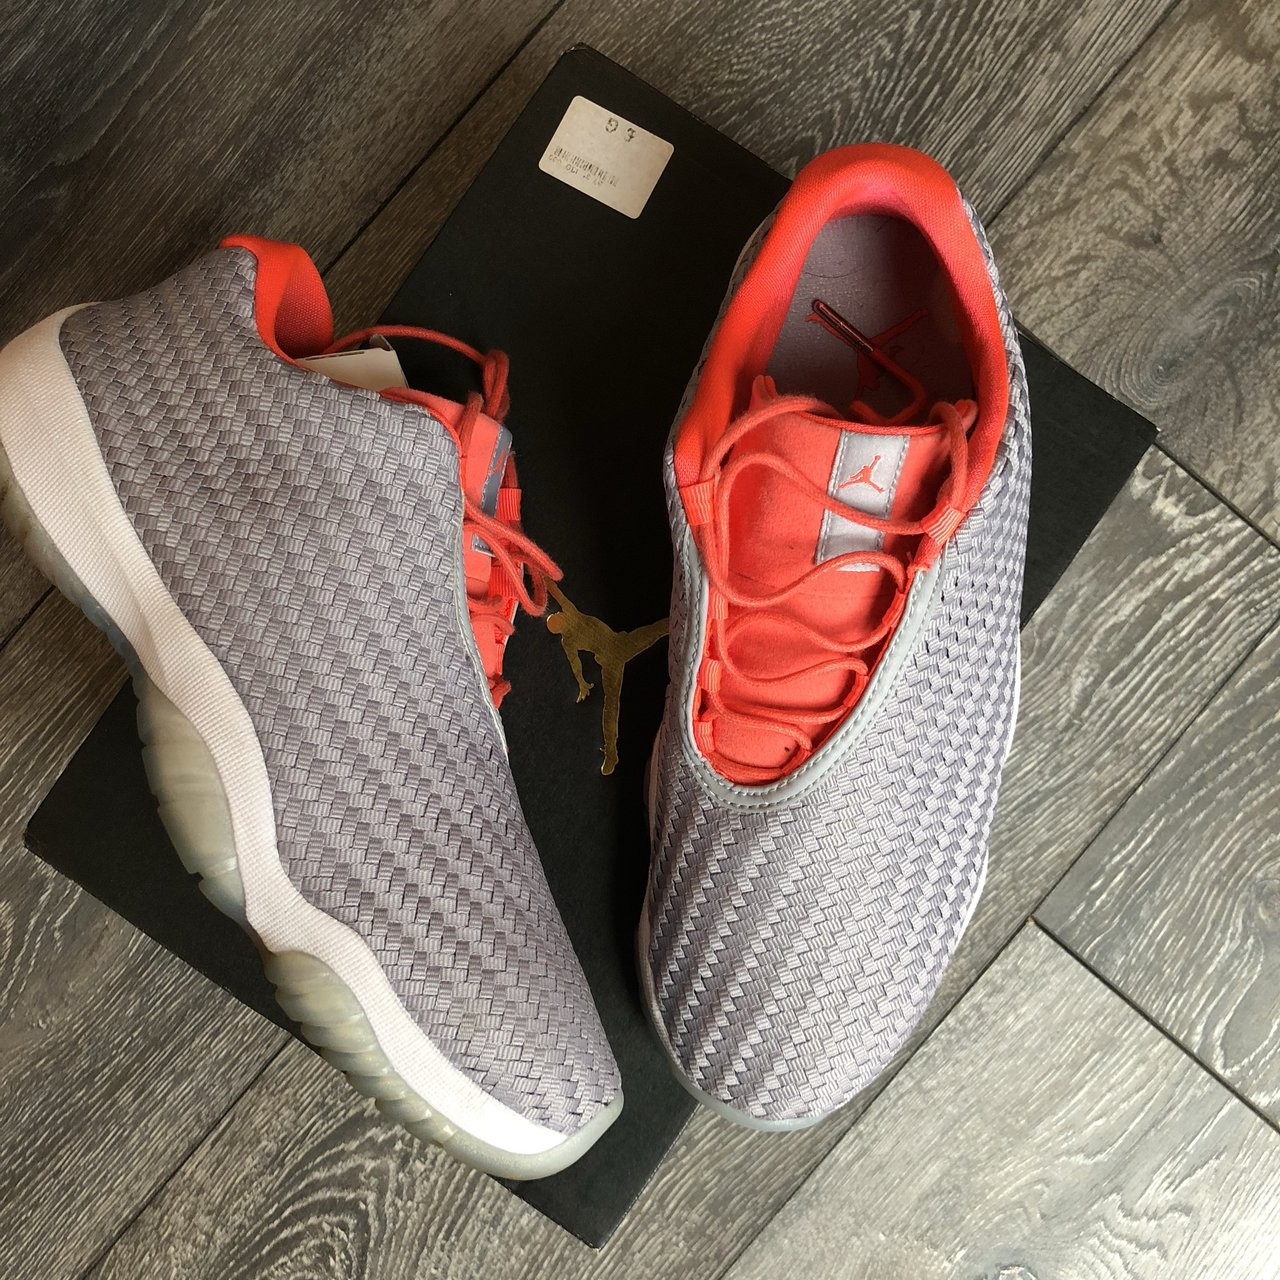 Air Jordan future low Wolf Grey infrared 23-white Uk size a - Depop 4109a37cb